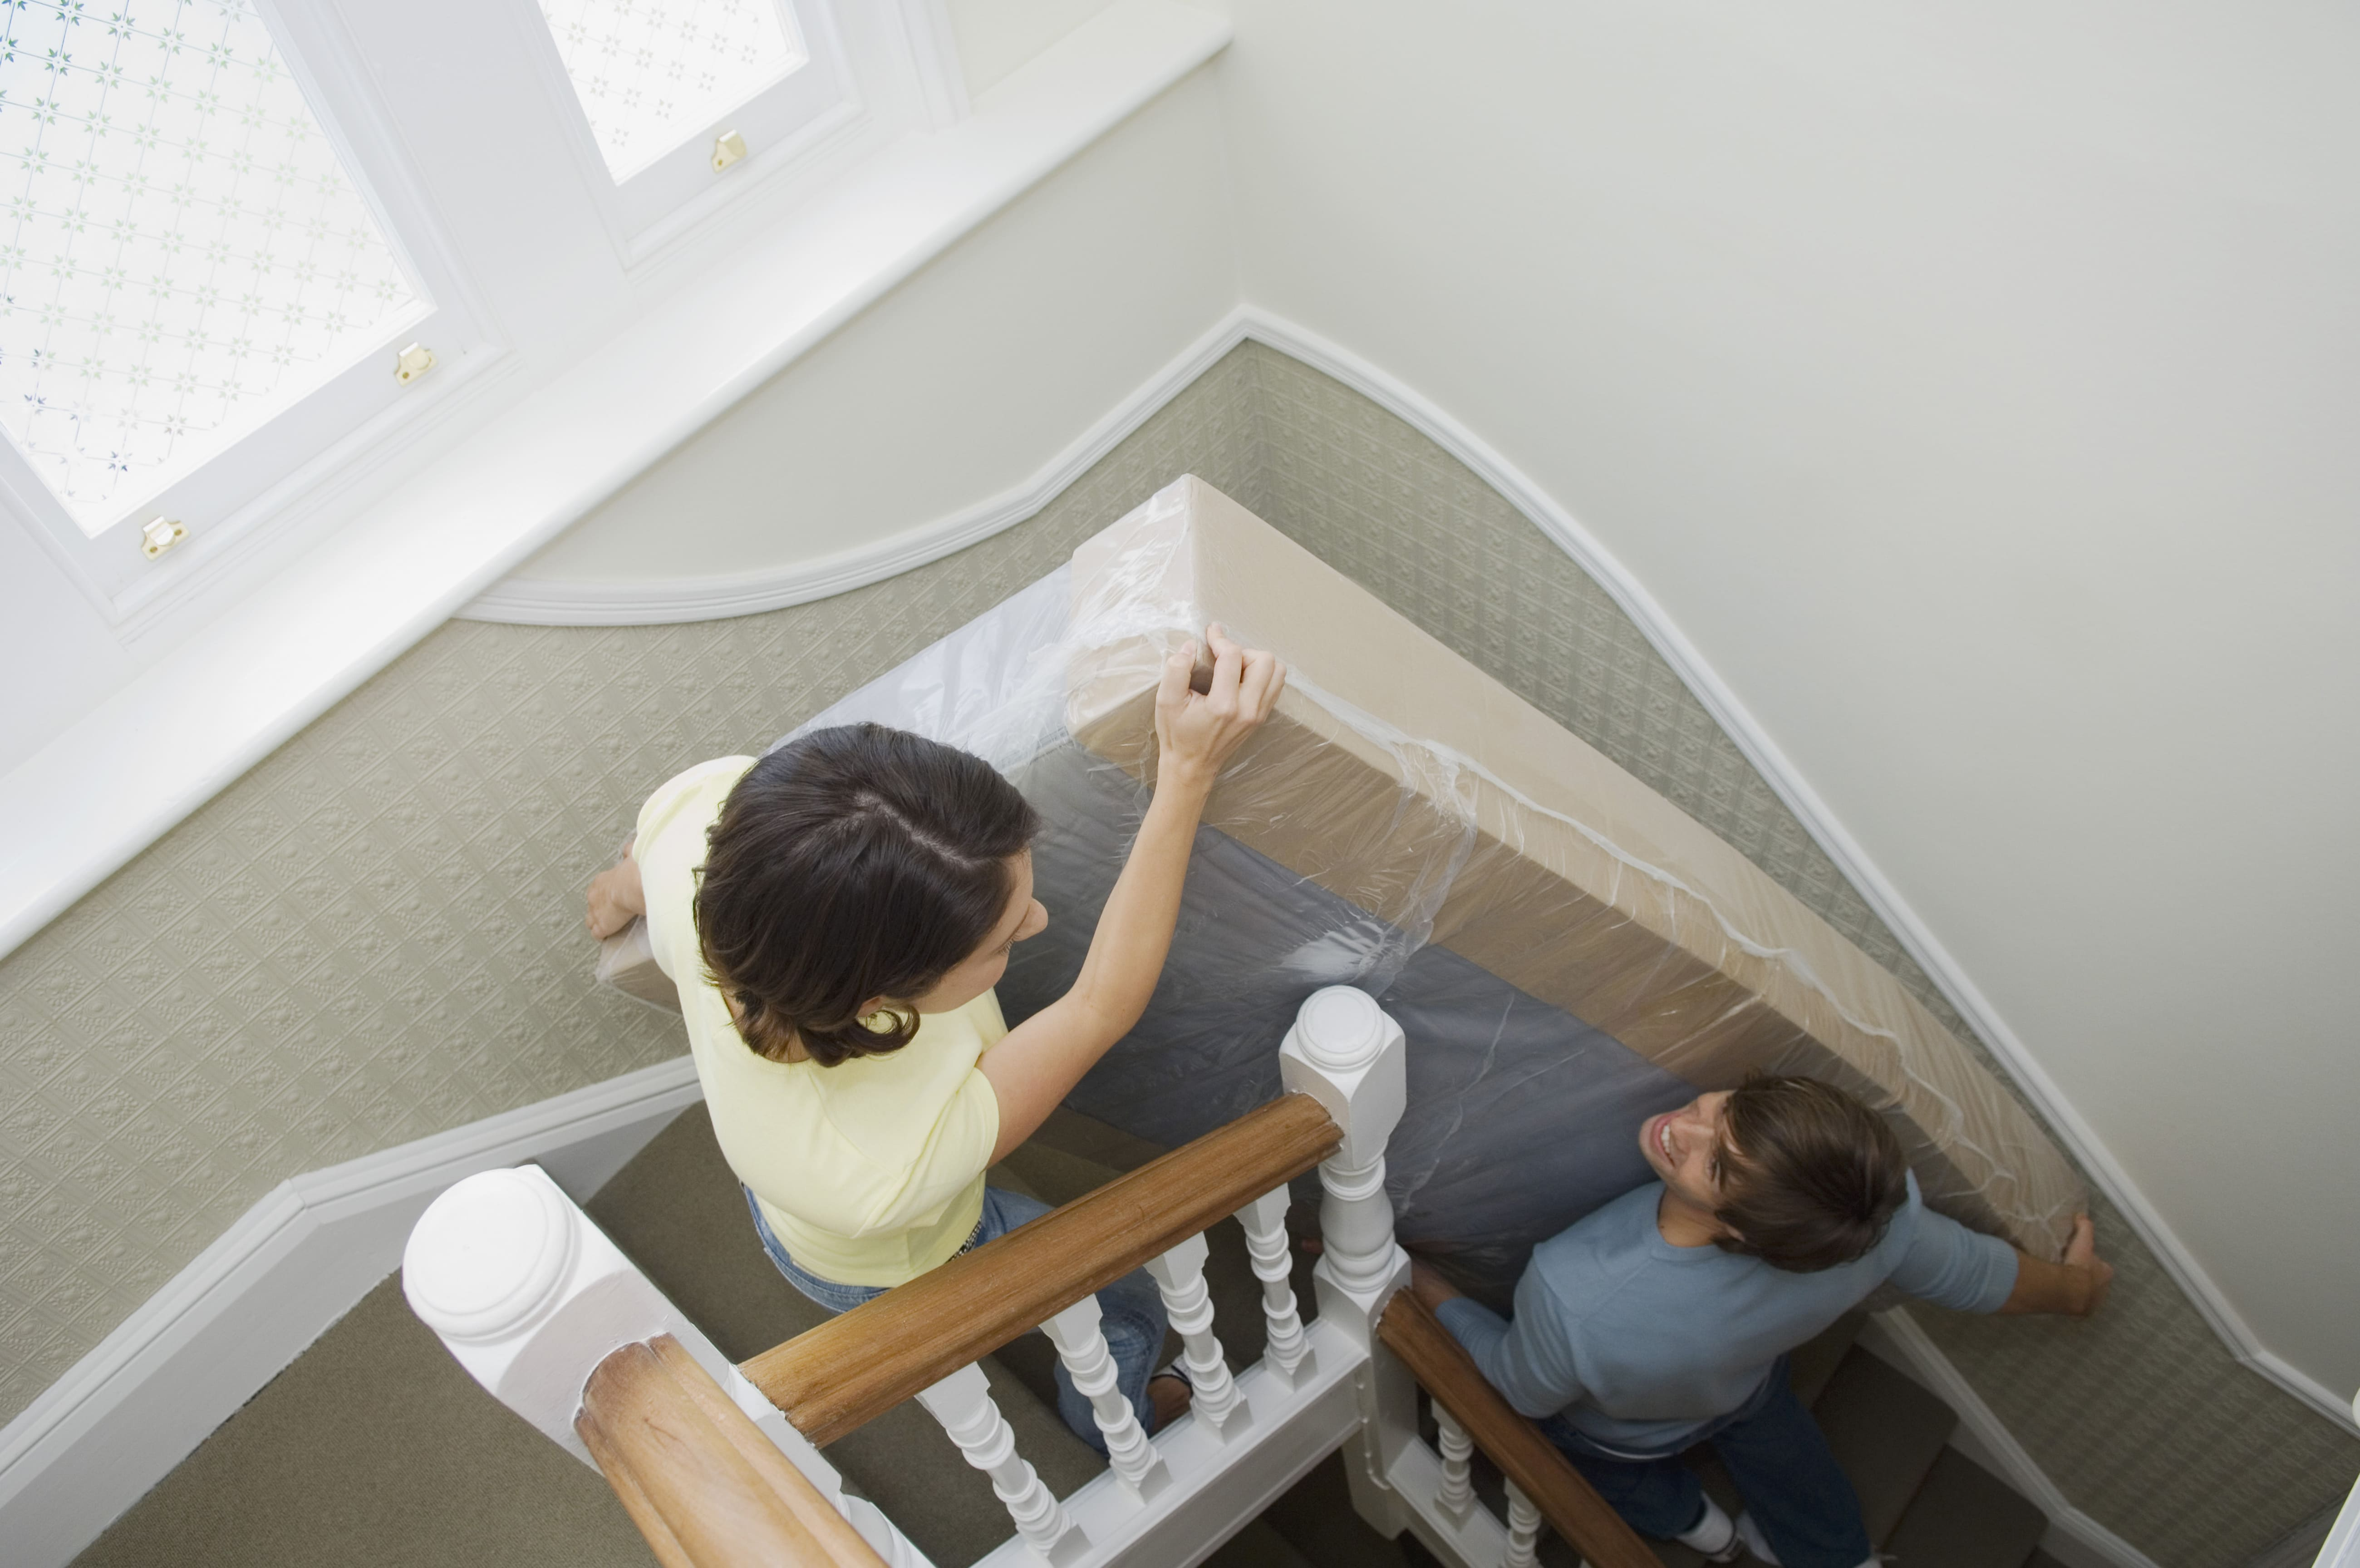 couple moving a mattress packed in a mattress bag down the stairs